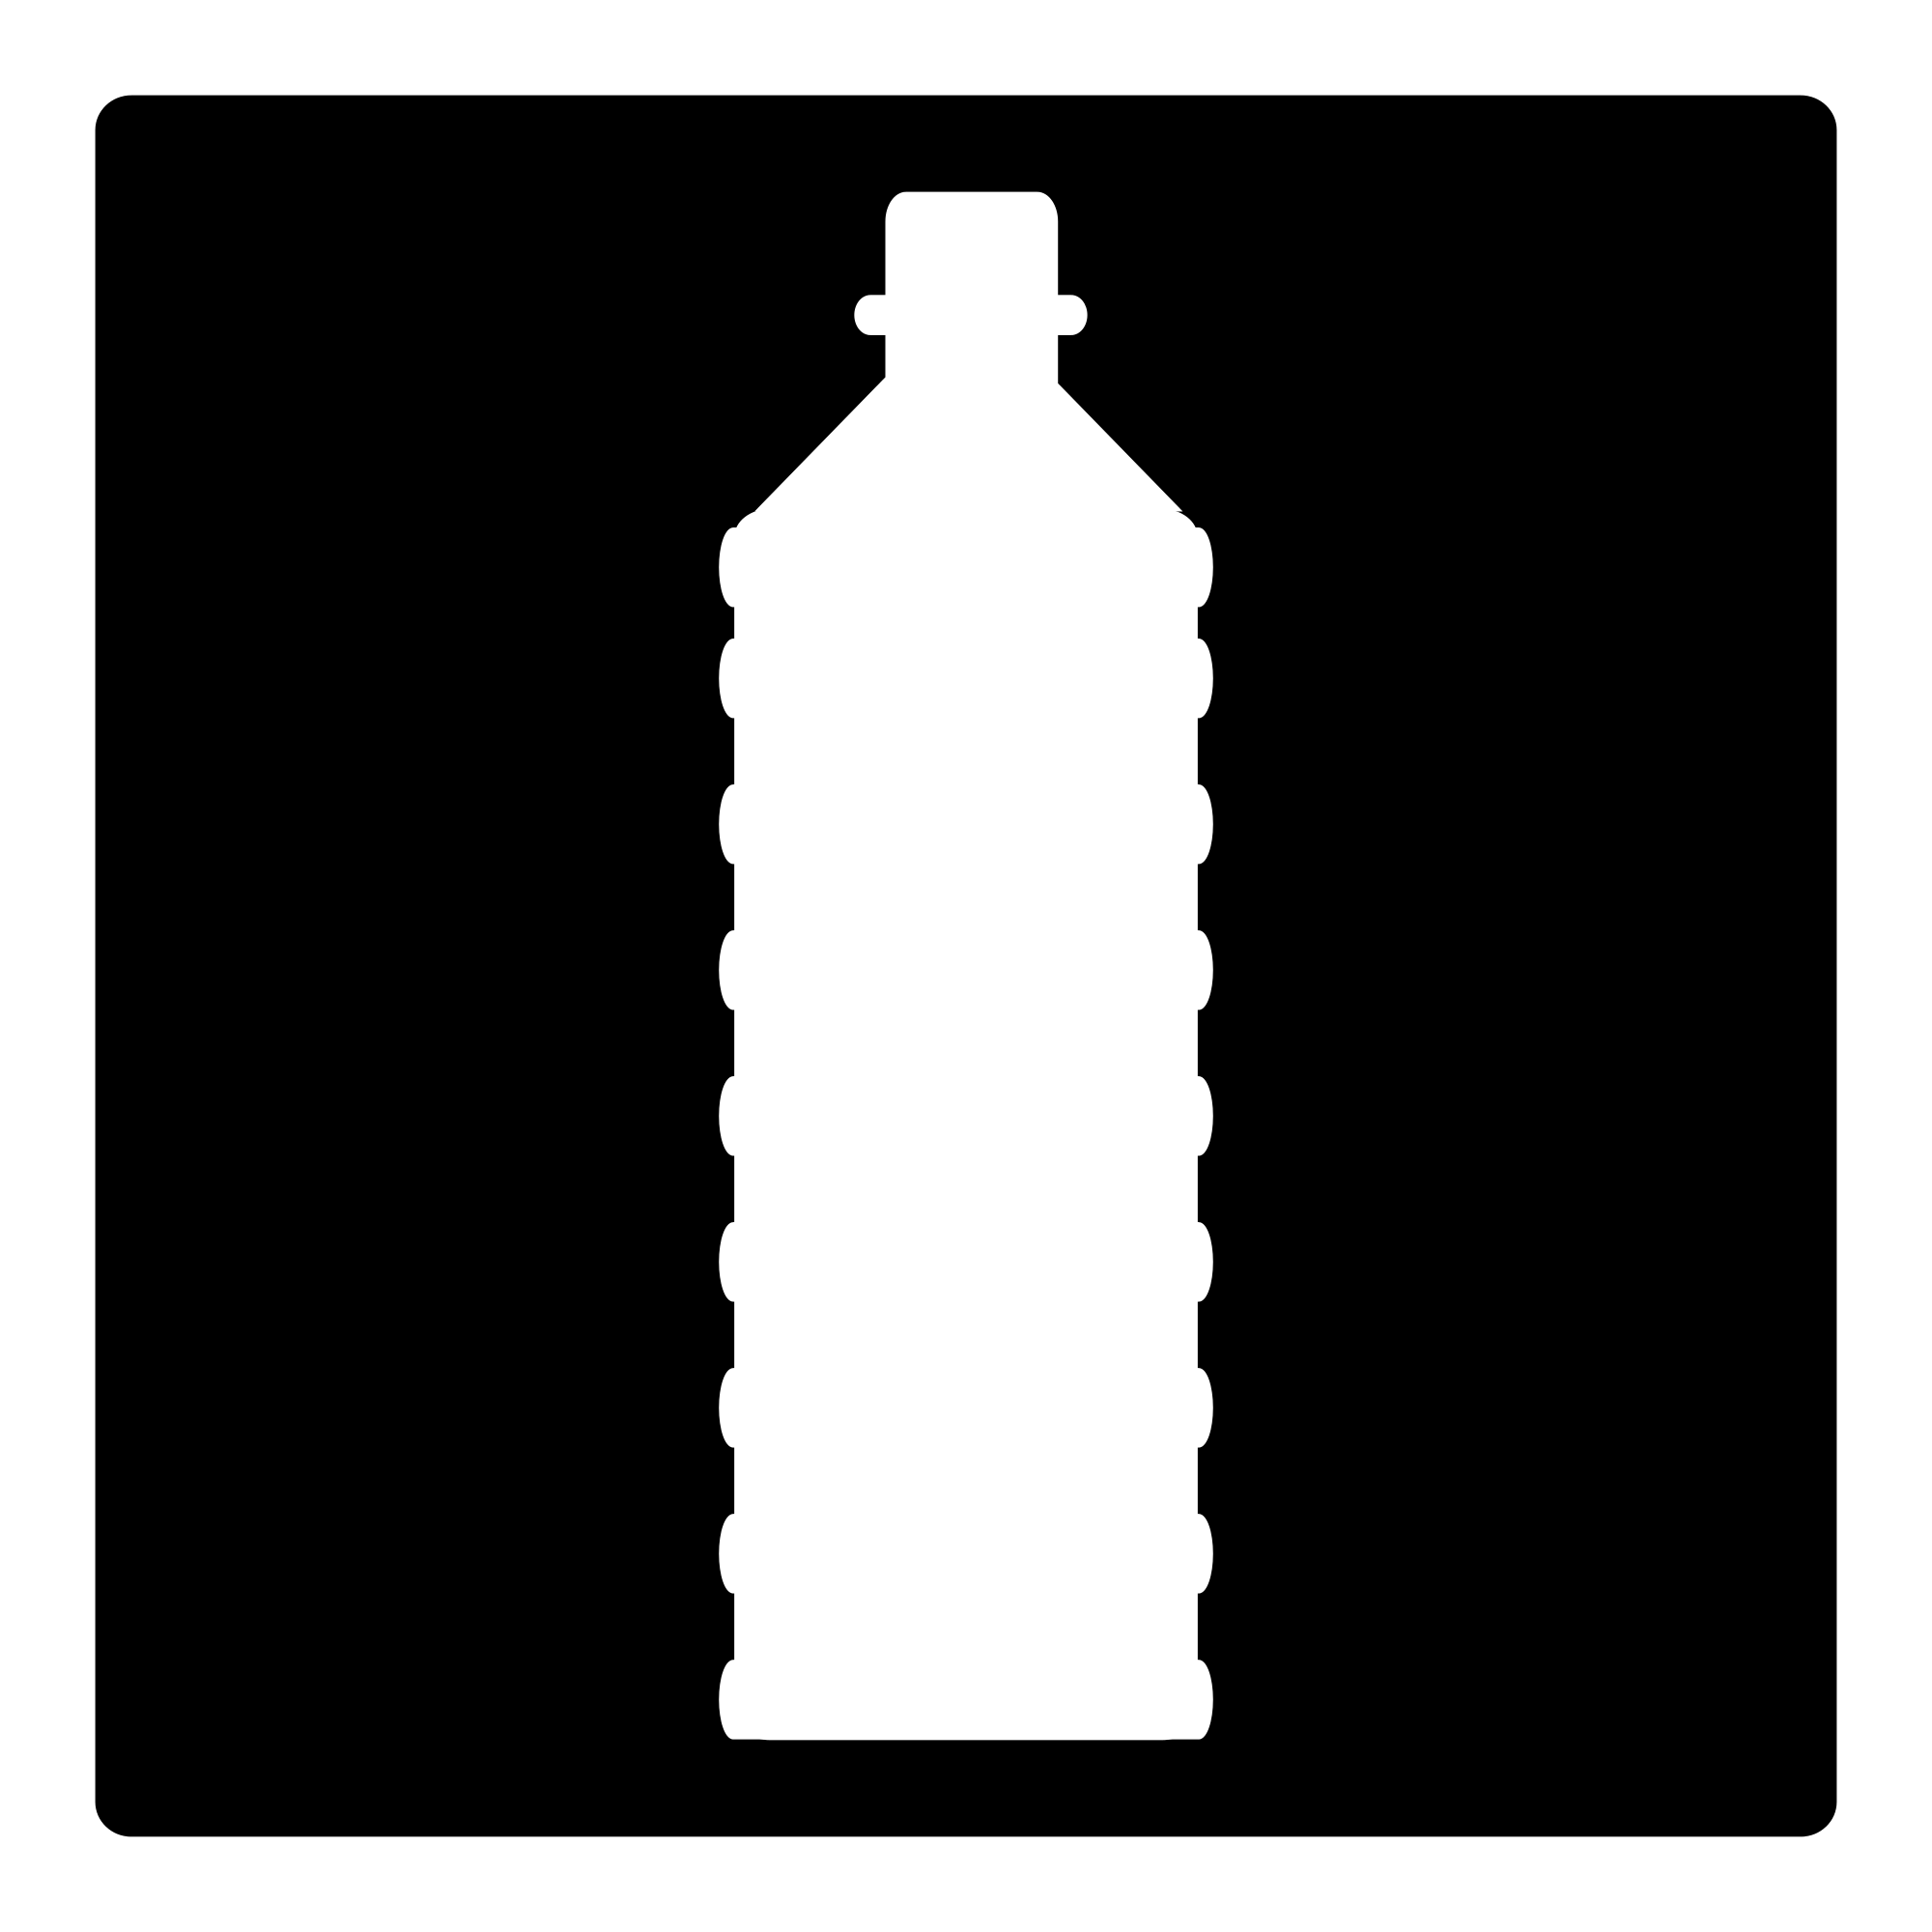 Bottle svg #14, Download drawings